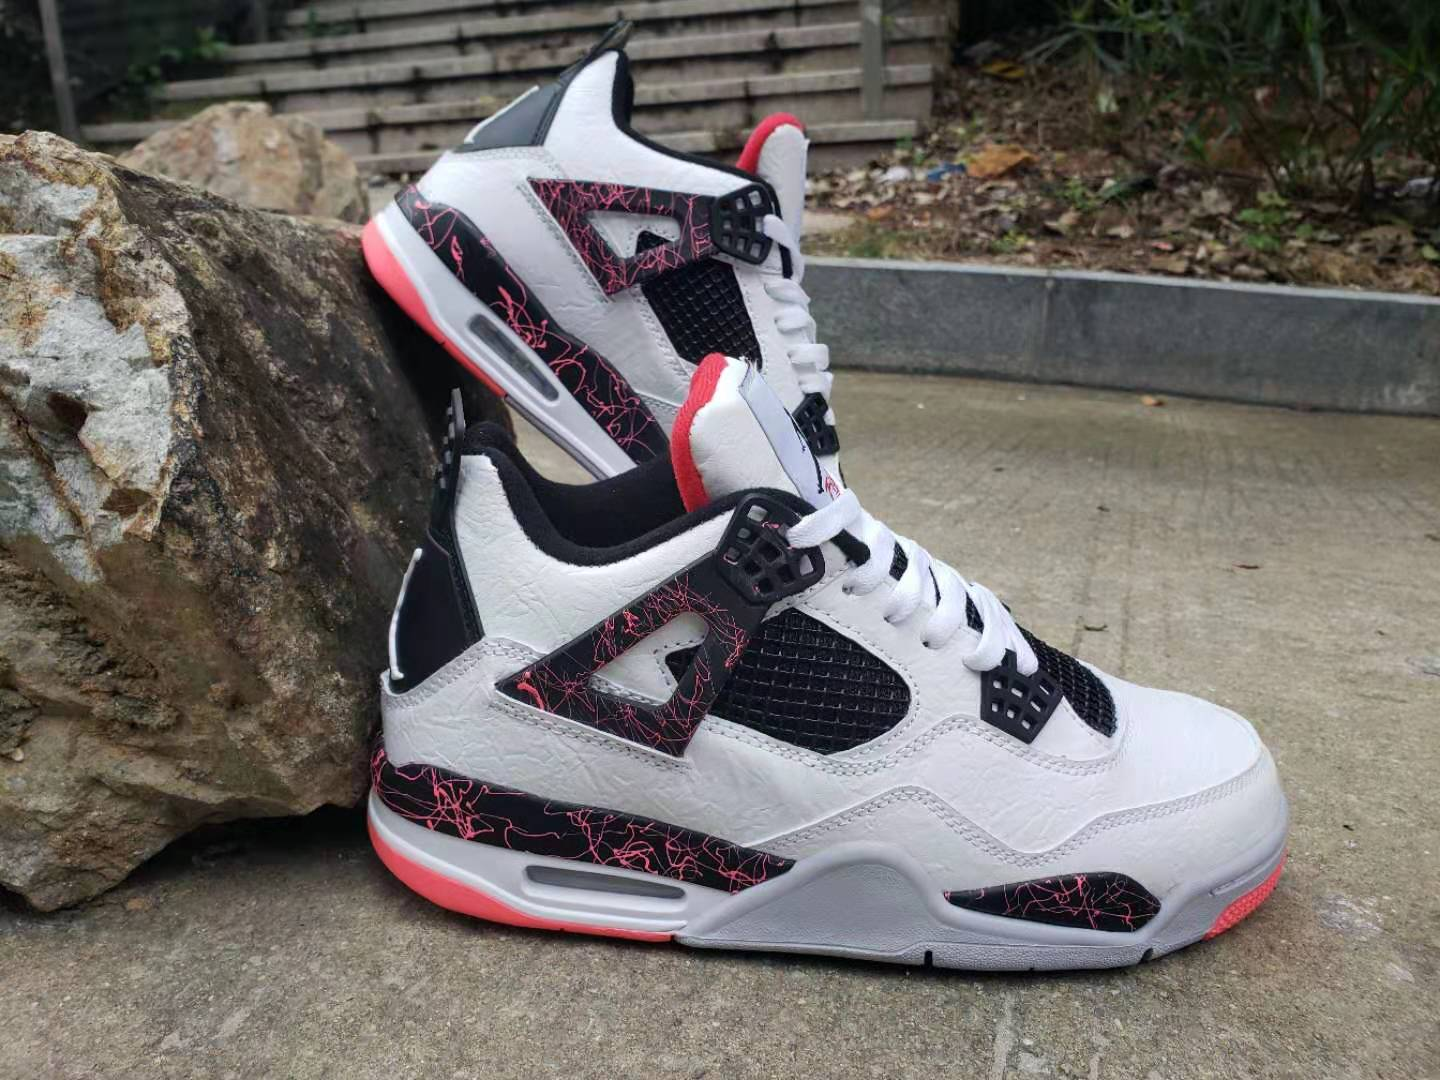 2019 New Cheap Nike Air Jordan Retro 4 Sneakers For Men in 206352, cheap Jordan4, only $62!